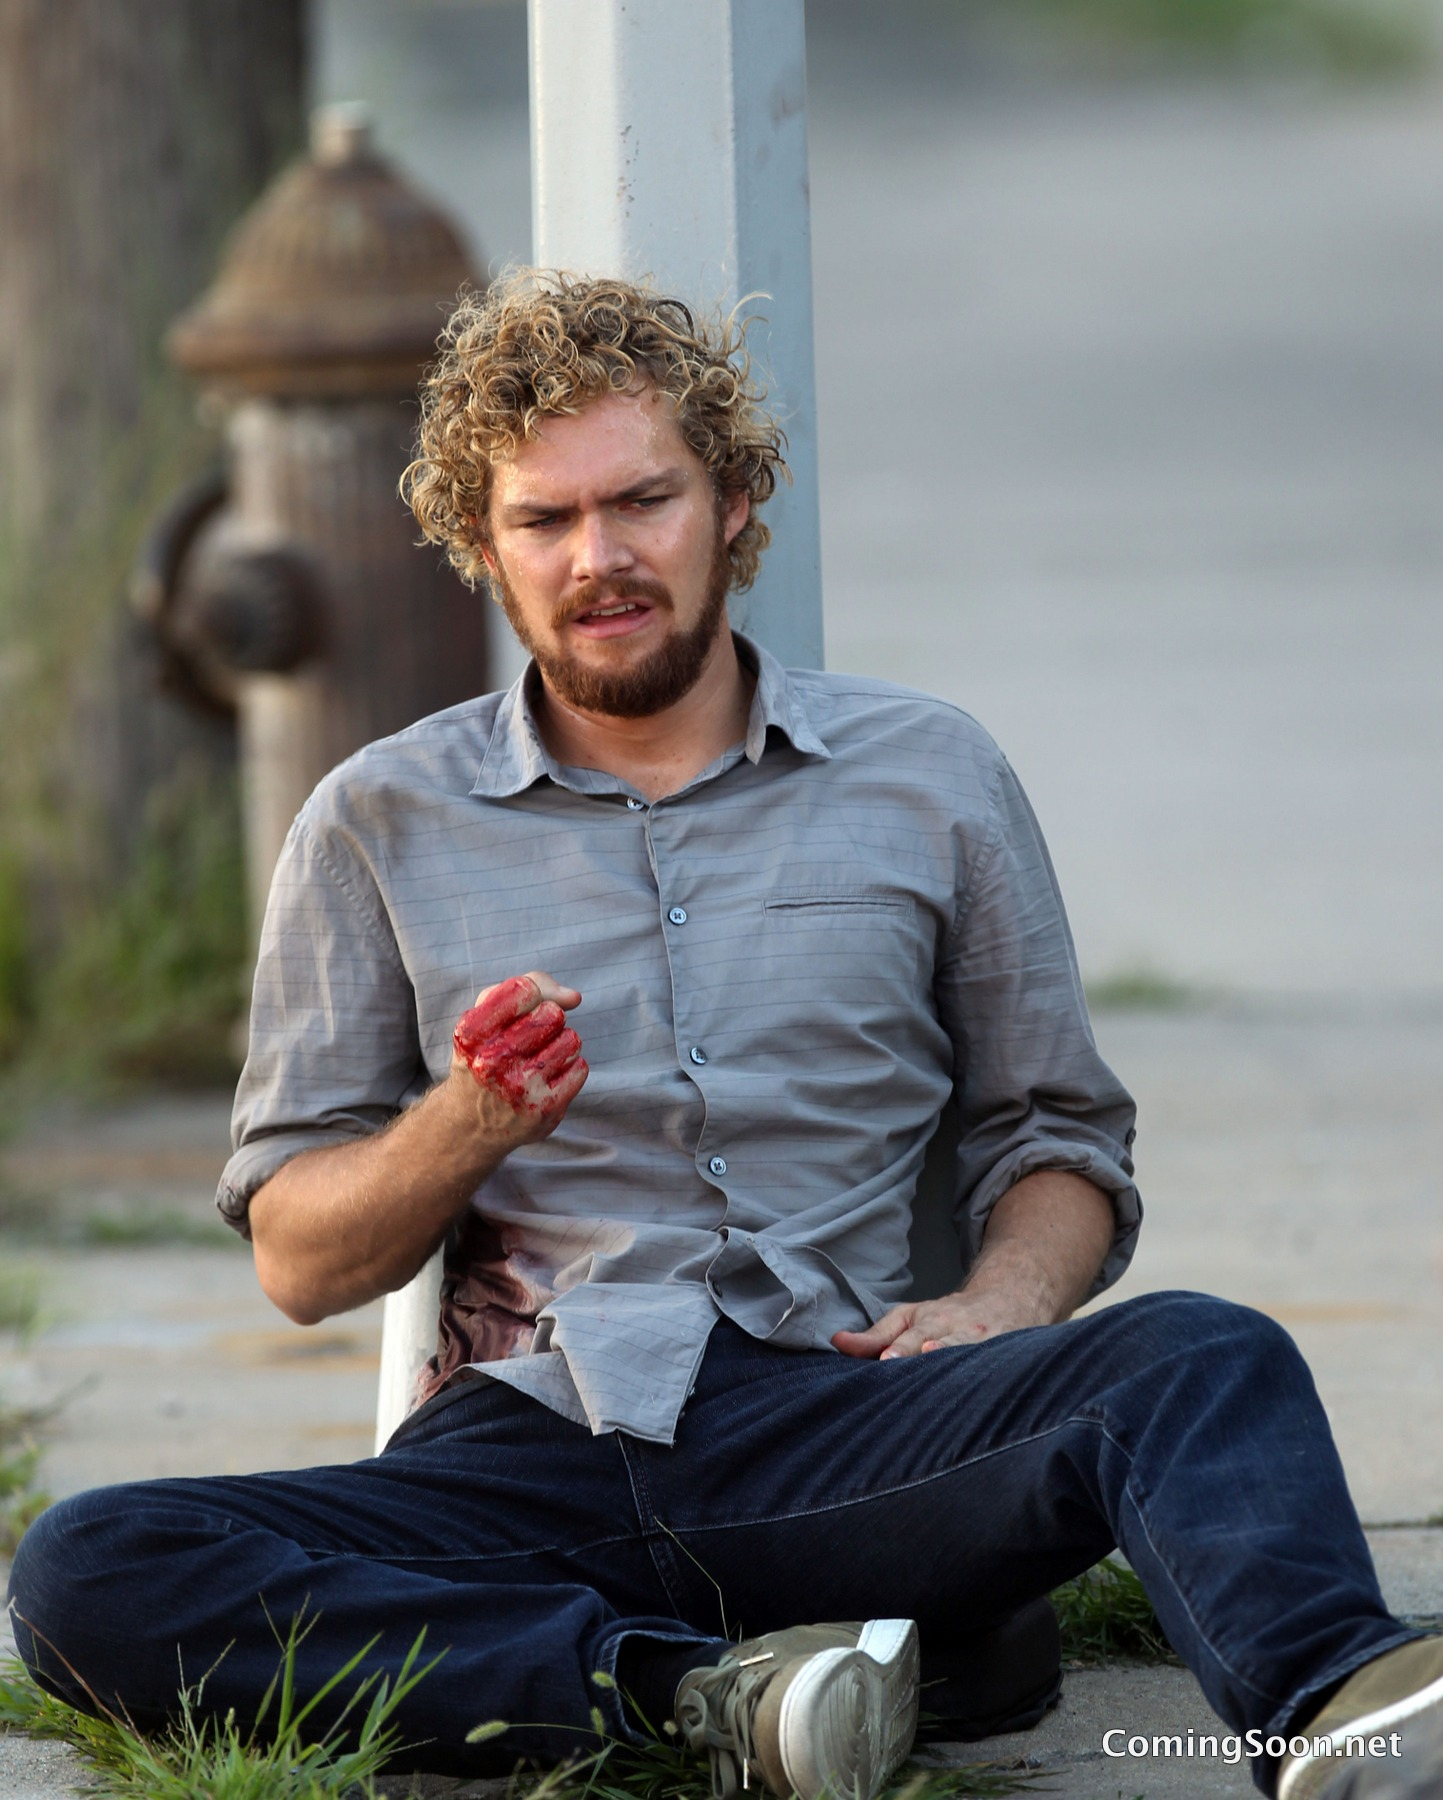 New Image of Bloody Danny Rand on the Set of Marvel's Iron Fist